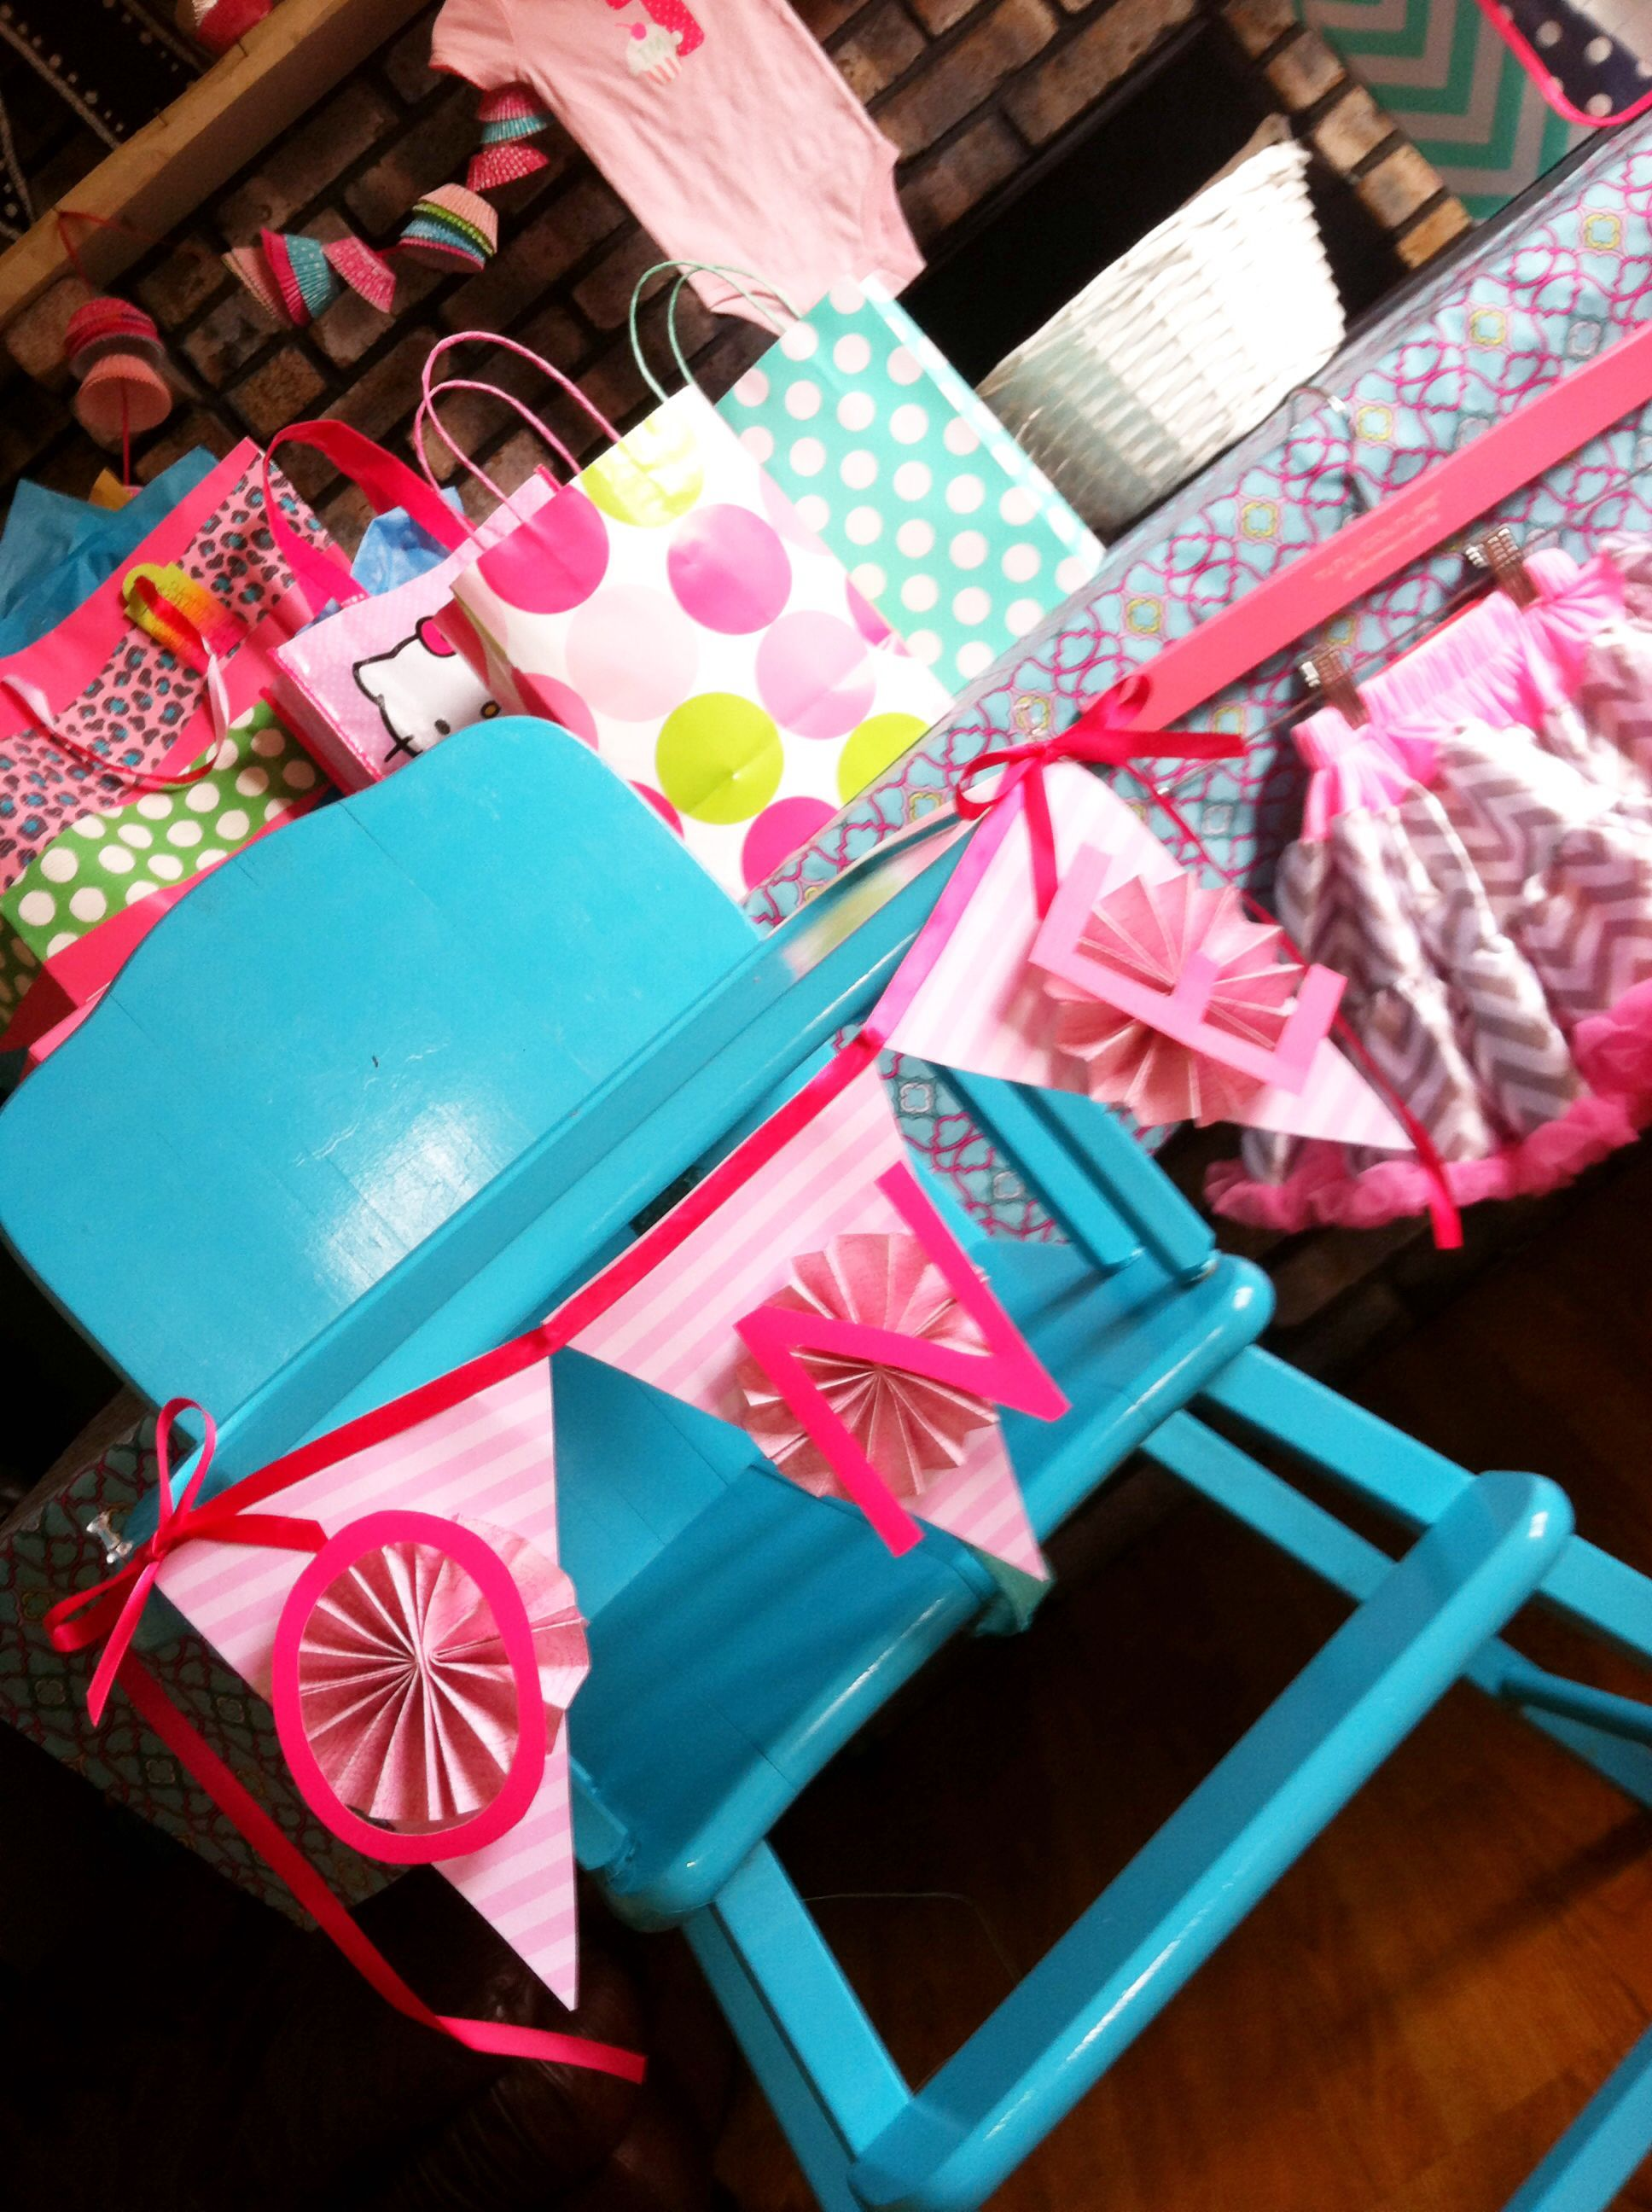 Teal high chair for Mia's birthday party